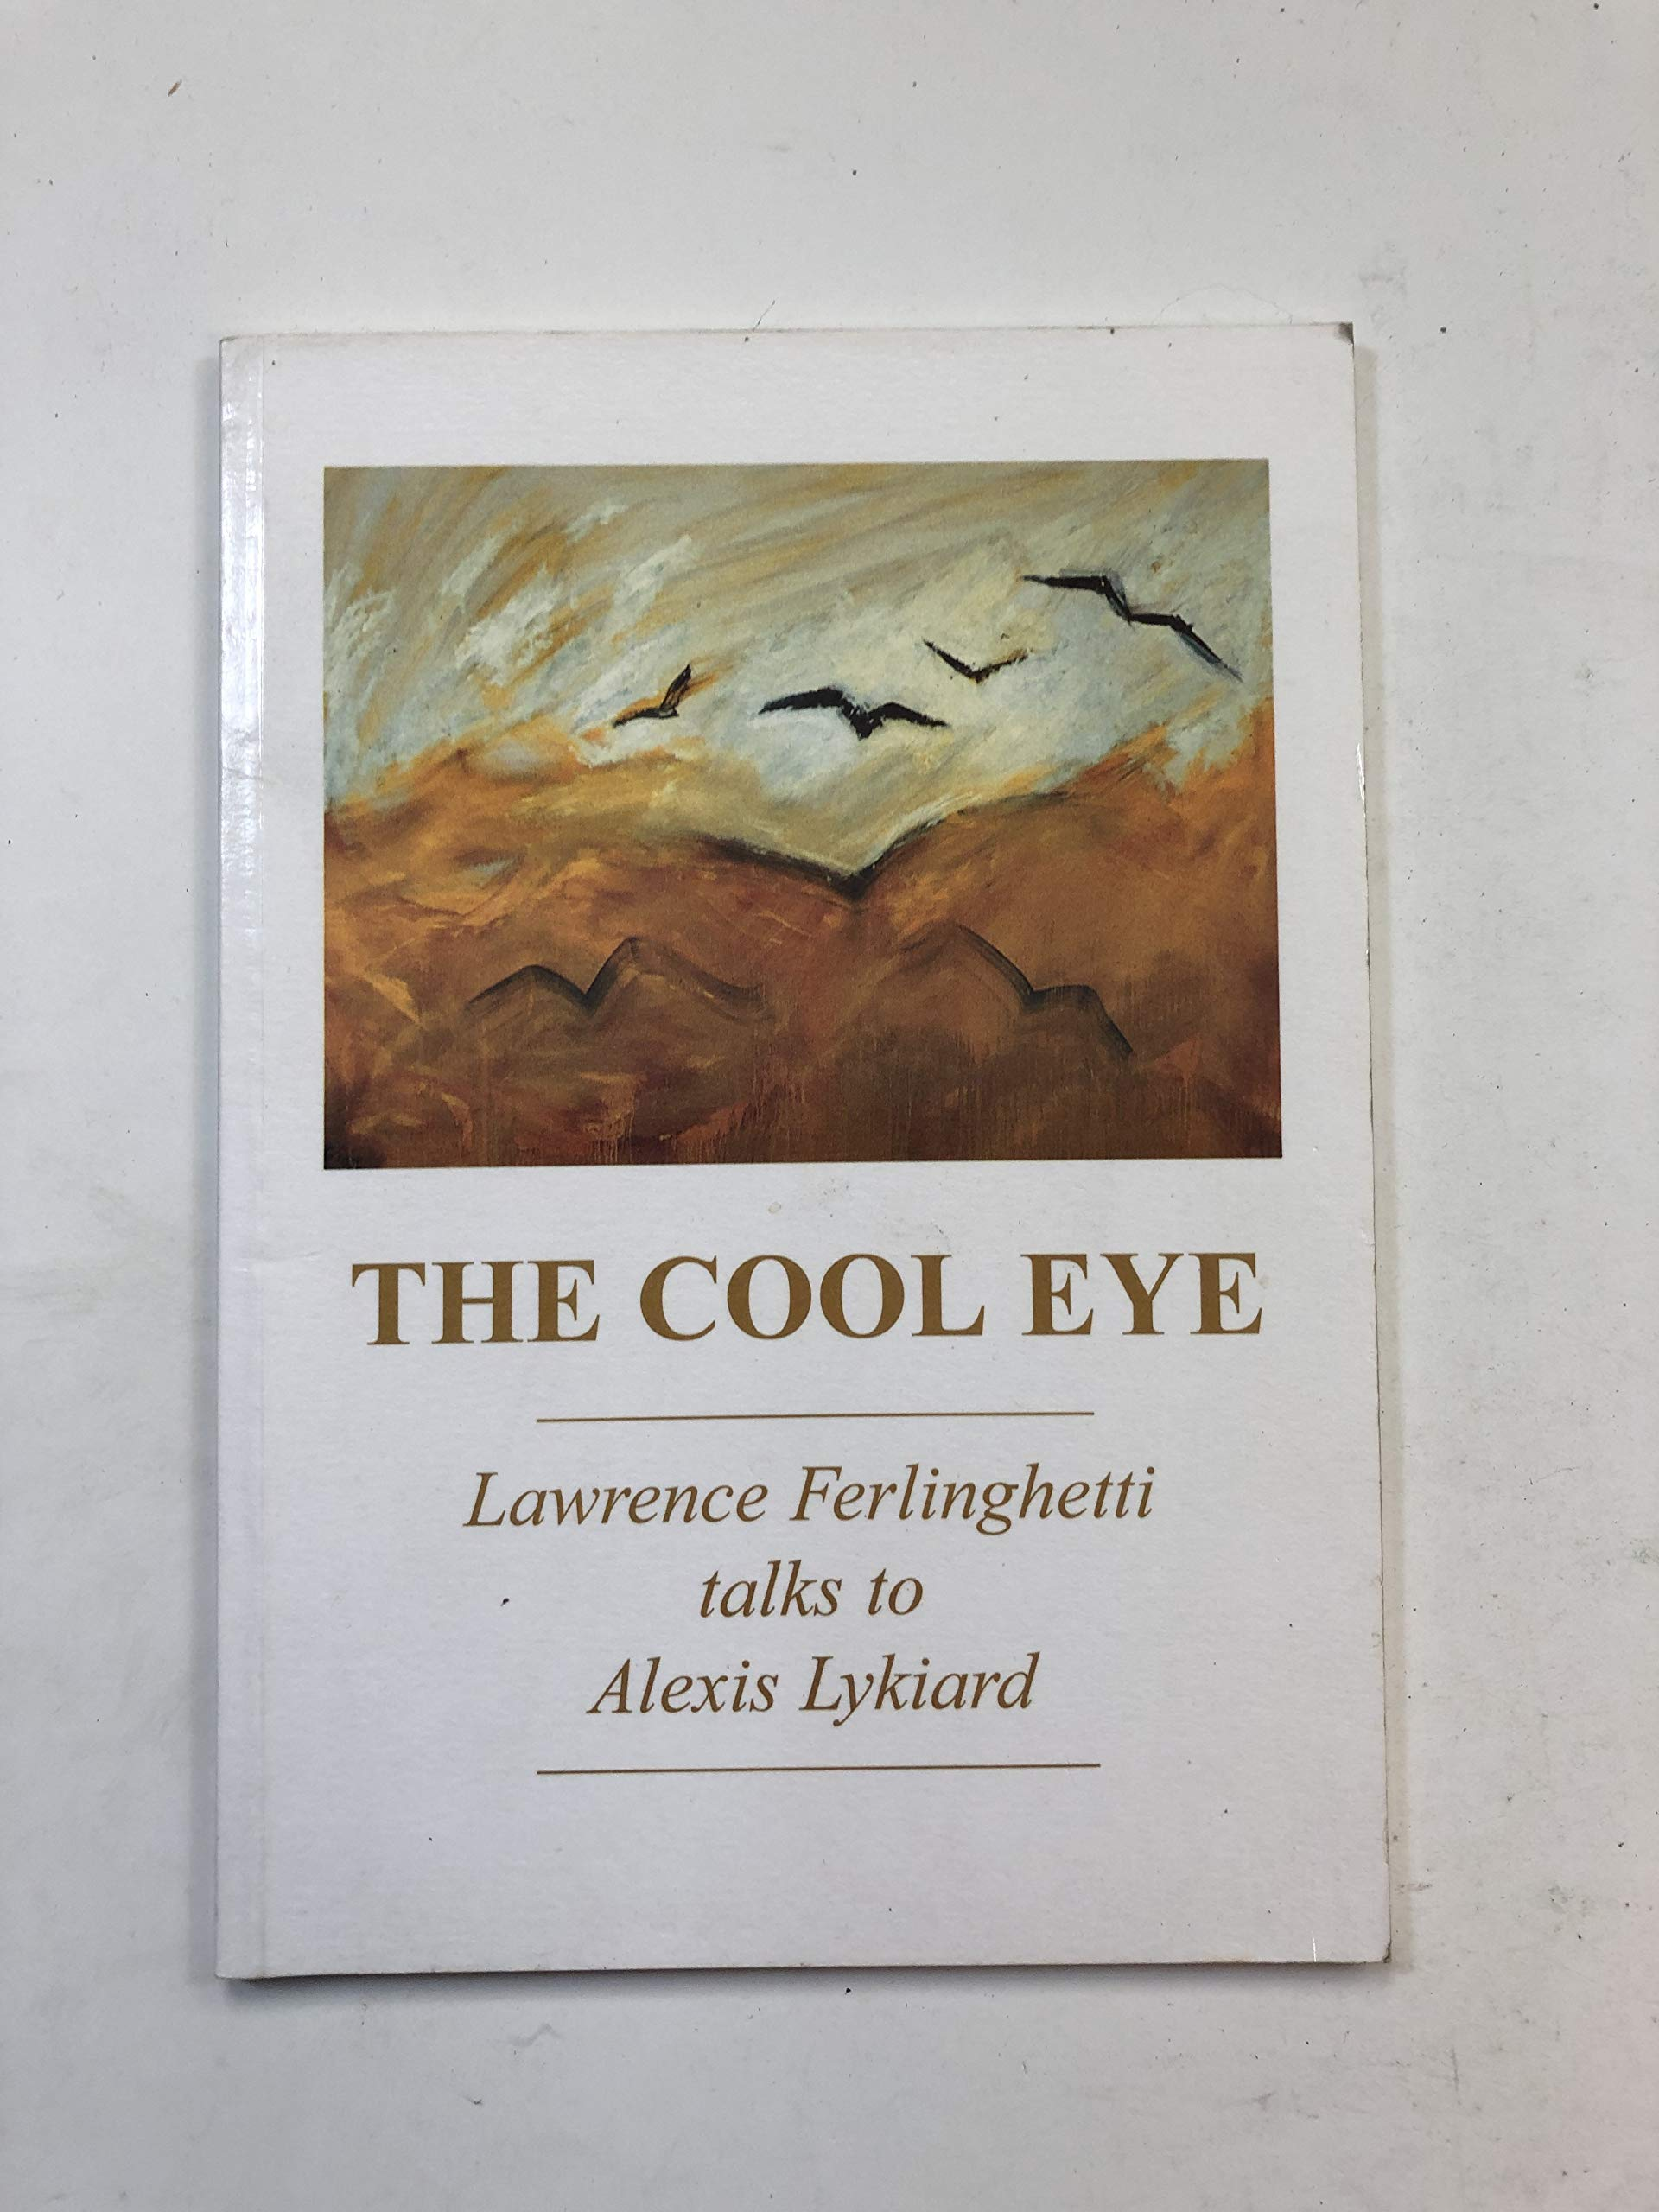 The Cool Eye: Lawrence Ferlinghetti Talks to Alexis Lykiard: Amazon.it:  Ferlinghetti, Lawrence, Lykiard, Alexis: Libri in altre lingue